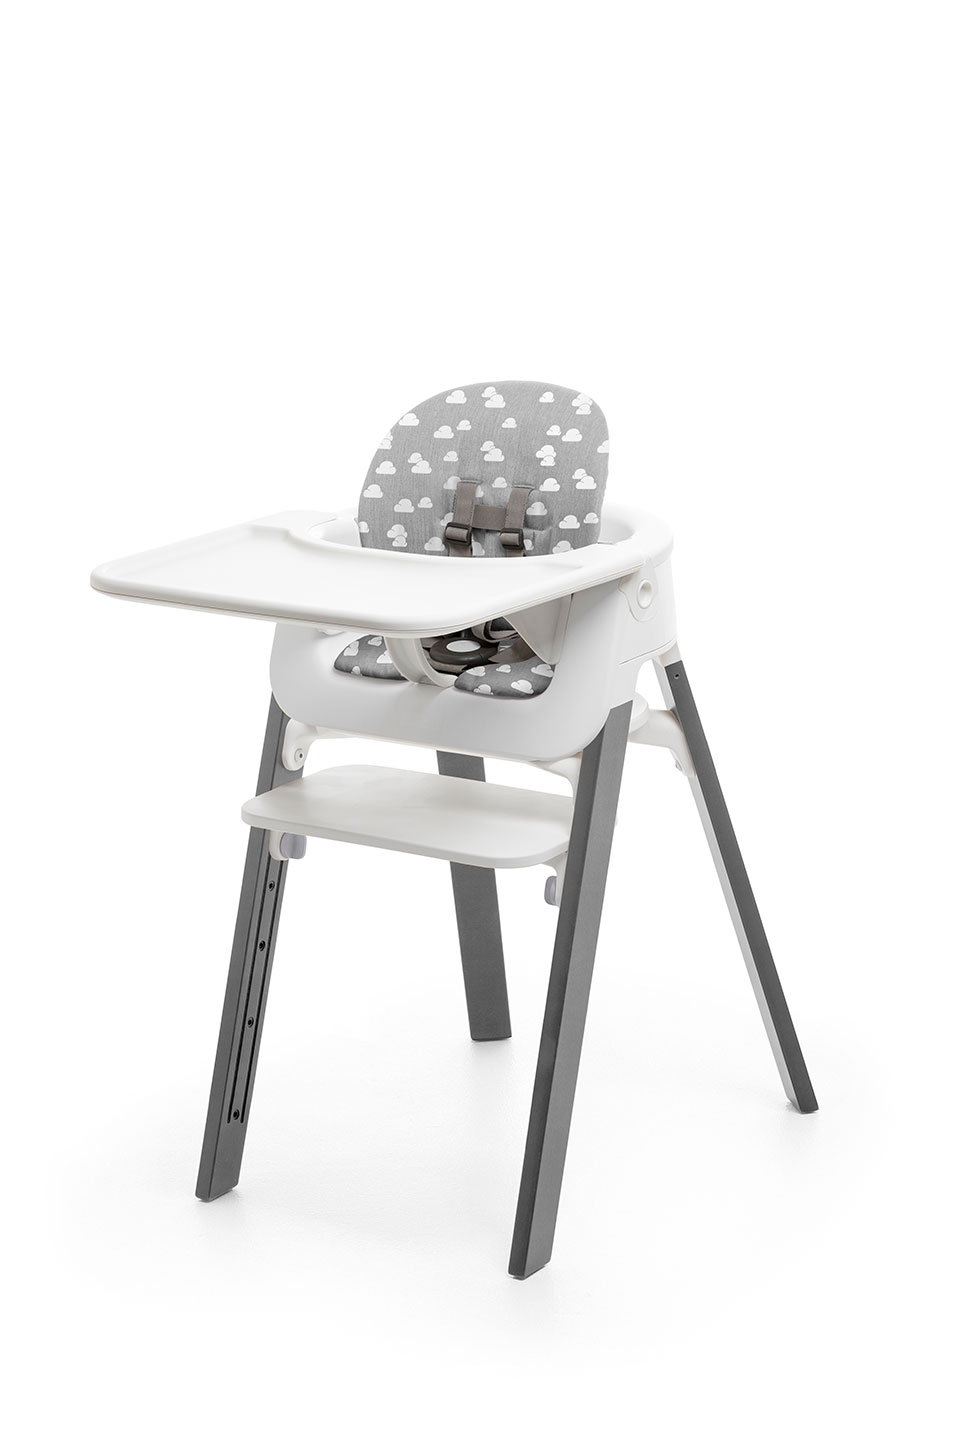 stokke launches their steps soft cushioned bouncer in. Black Bedroom Furniture Sets. Home Design Ideas